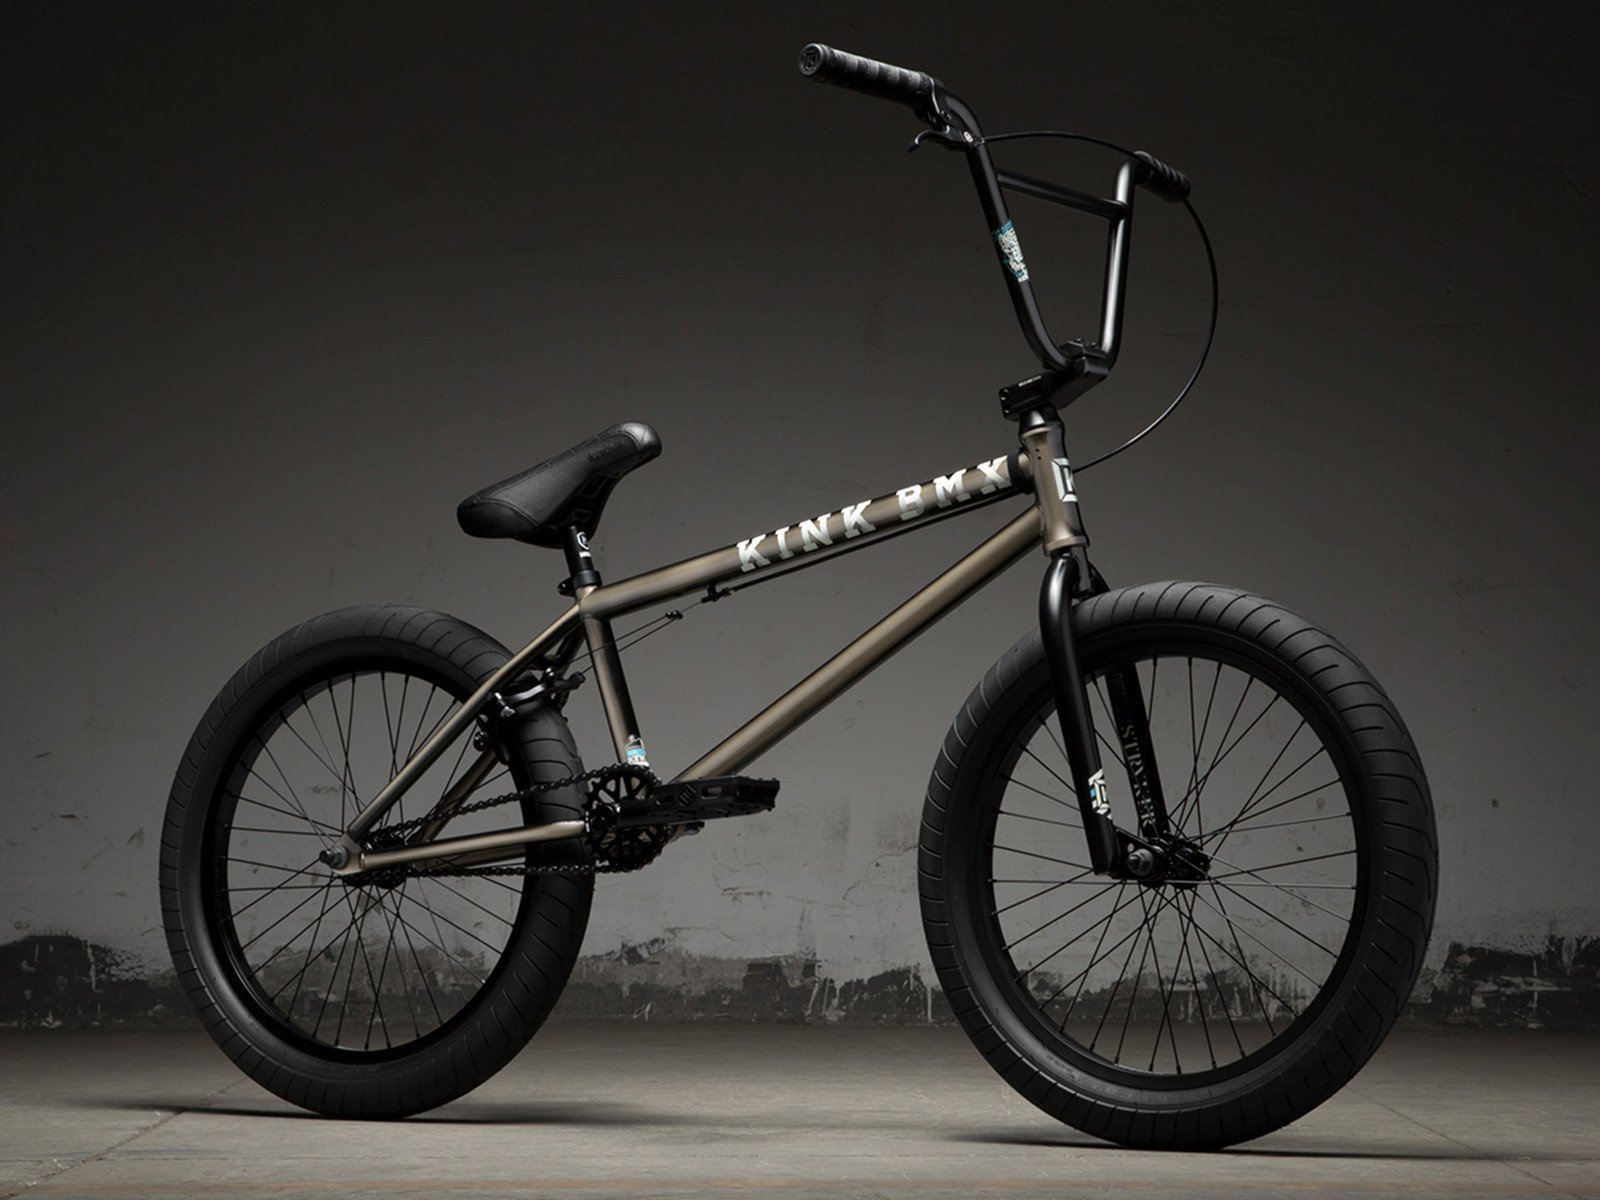 2019 Kink Gap XL